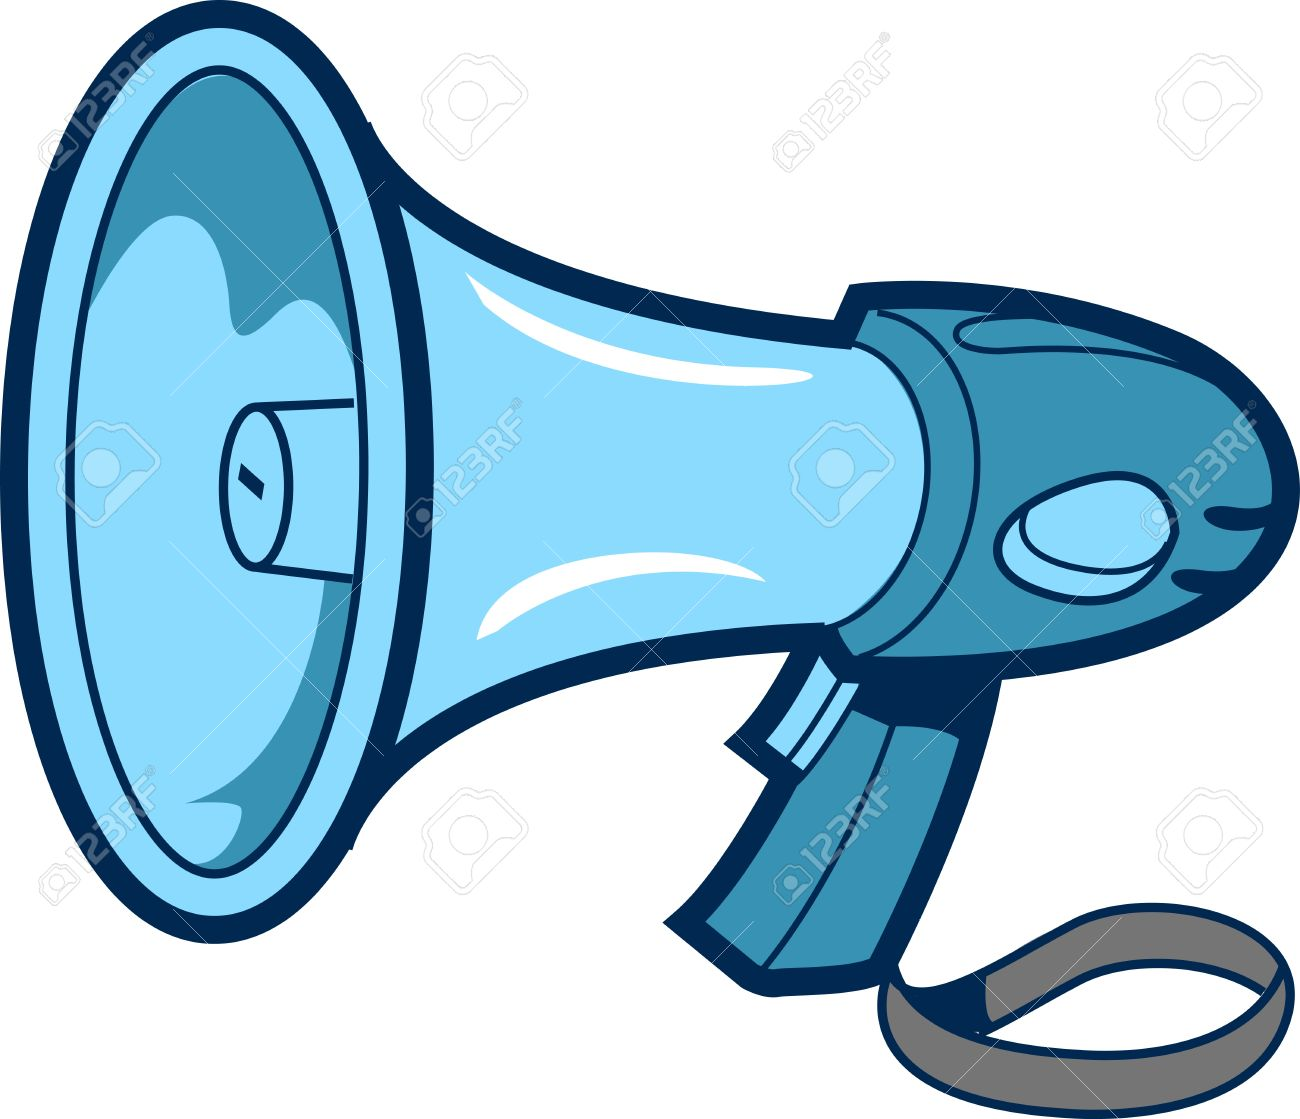 1300x1119 Cartoon Spot Illustration Of A Bullhorn Royalty Free Cliparts